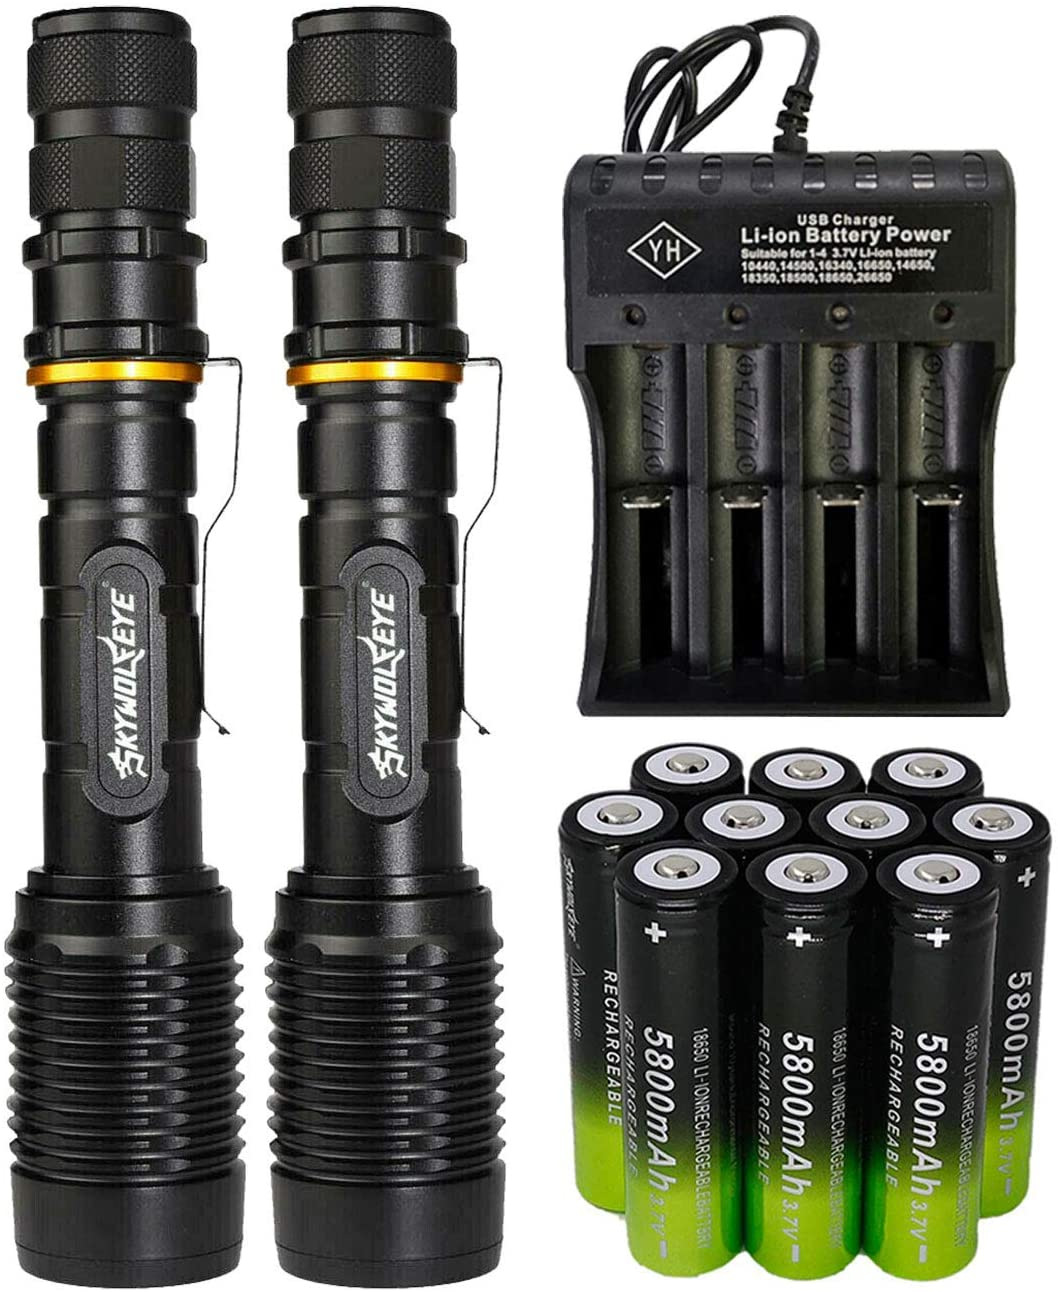 2 Packs High 2000 Lumens 18650 Tactical LED Flashlight Torch with 10PCS 3.7v High Capacity Rechargeable Battery&1PCS 4 Slots Charger, Bright Adjustable Focus and 5 Modes for Camping Hiking